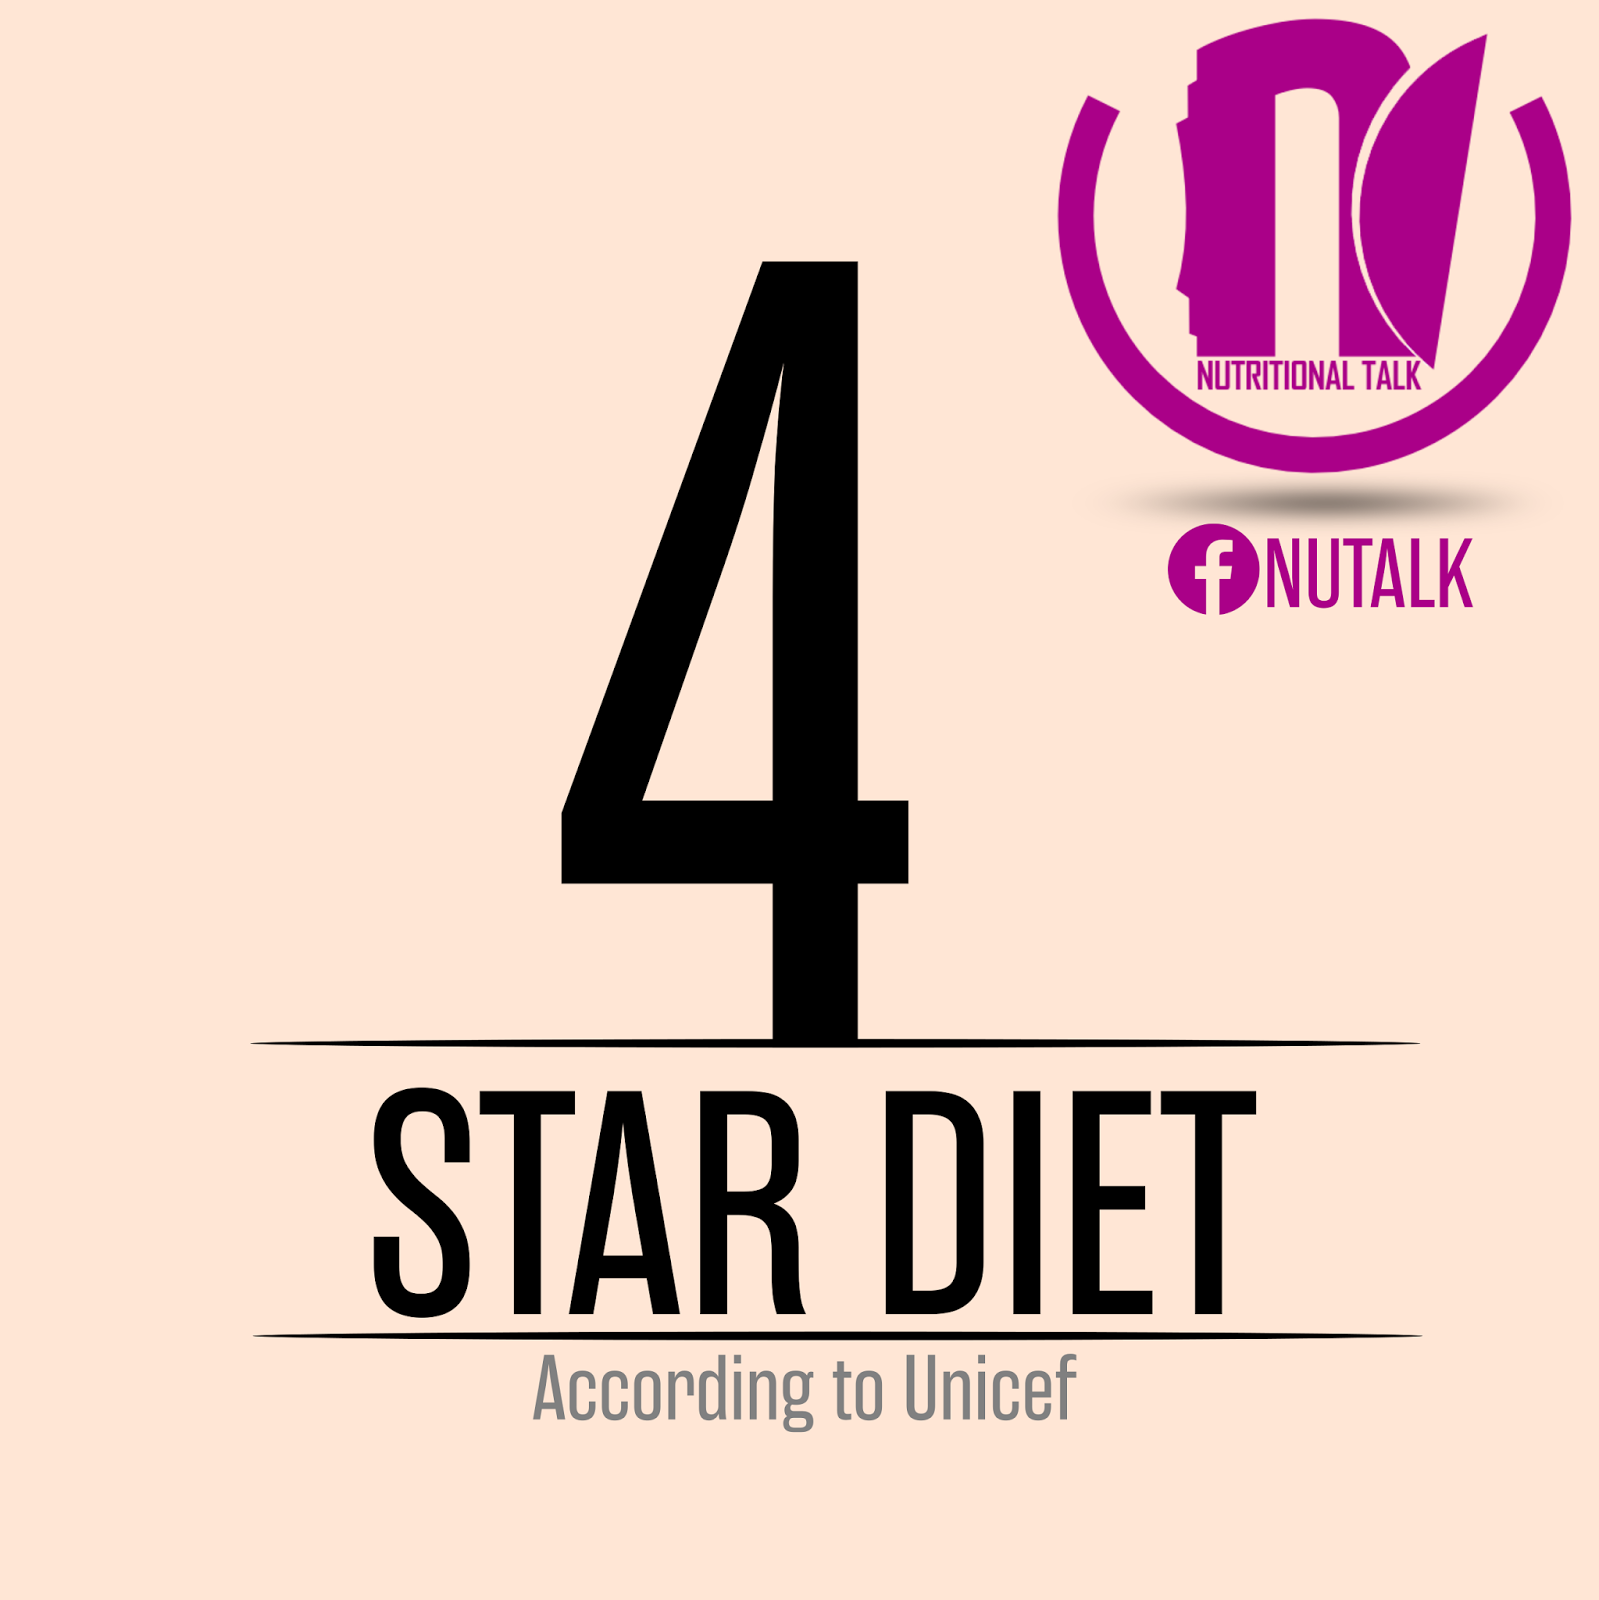 nwg works planning a star diet the new balanced diet a 4 star diet is a new method of making sure that your meals are balanced and contain foods from all the food groups